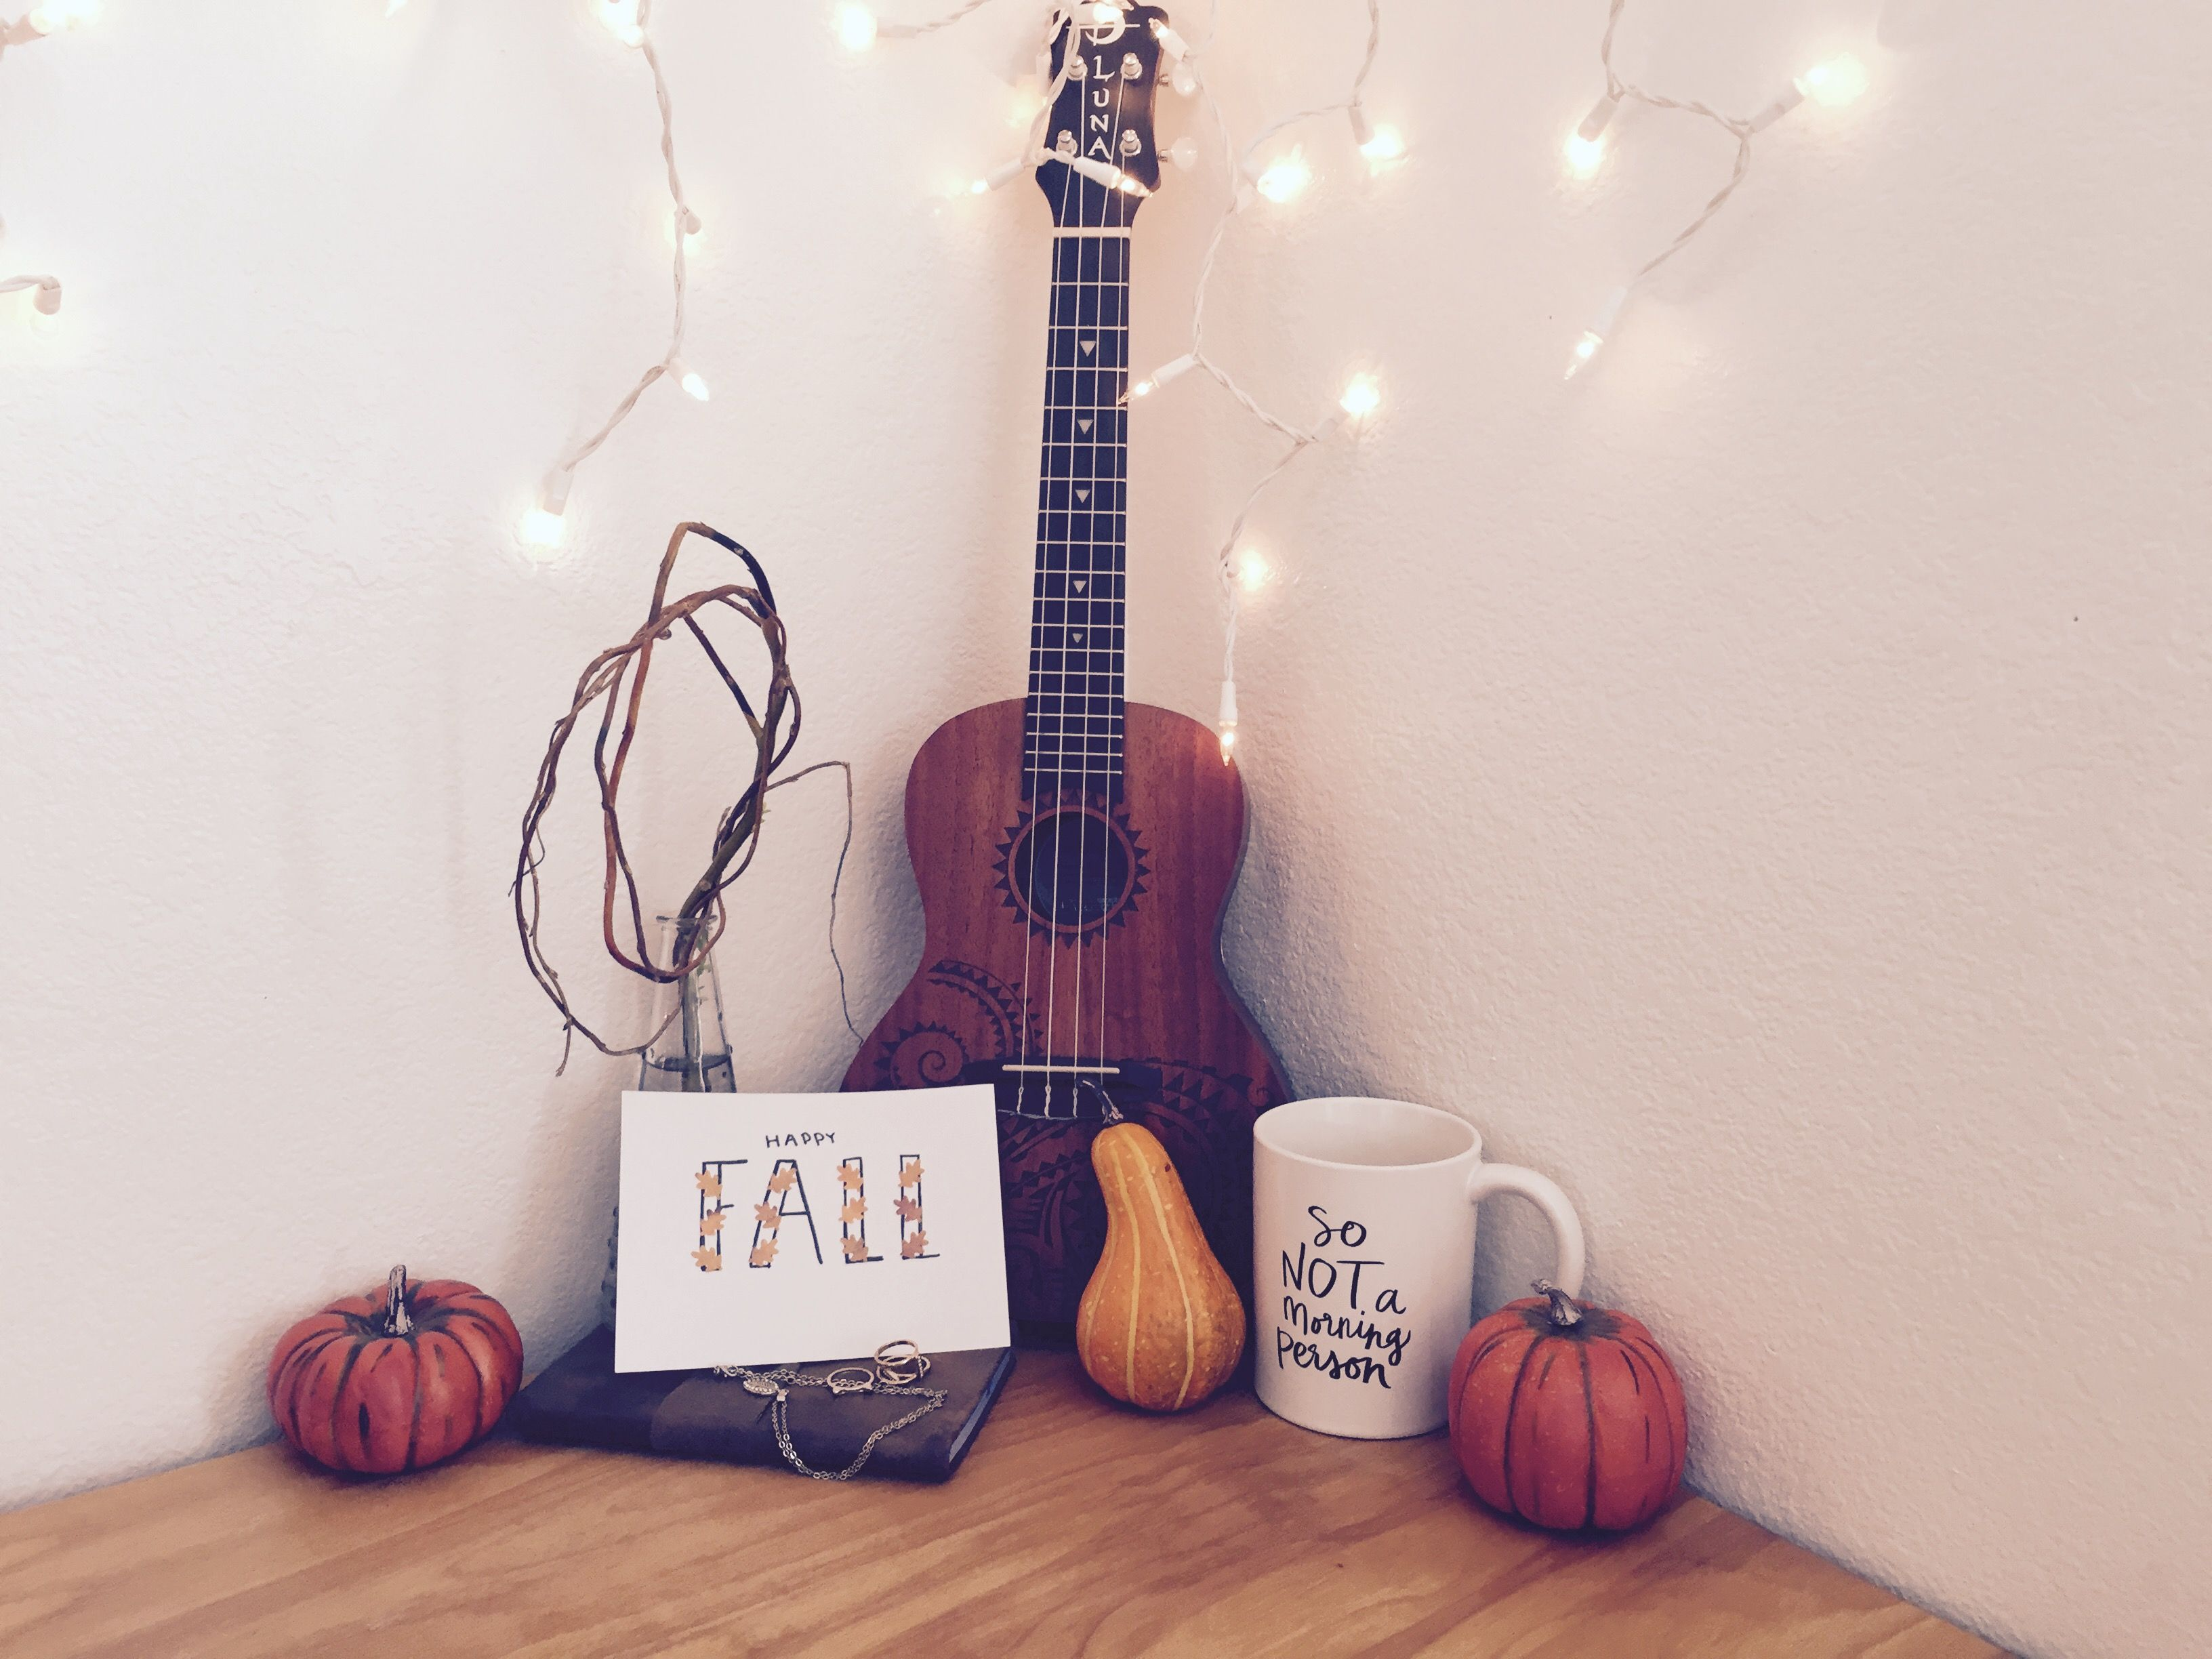 Pin by Lyddi19 on fall/autumn in 2019 | Ukulele, Cool ...